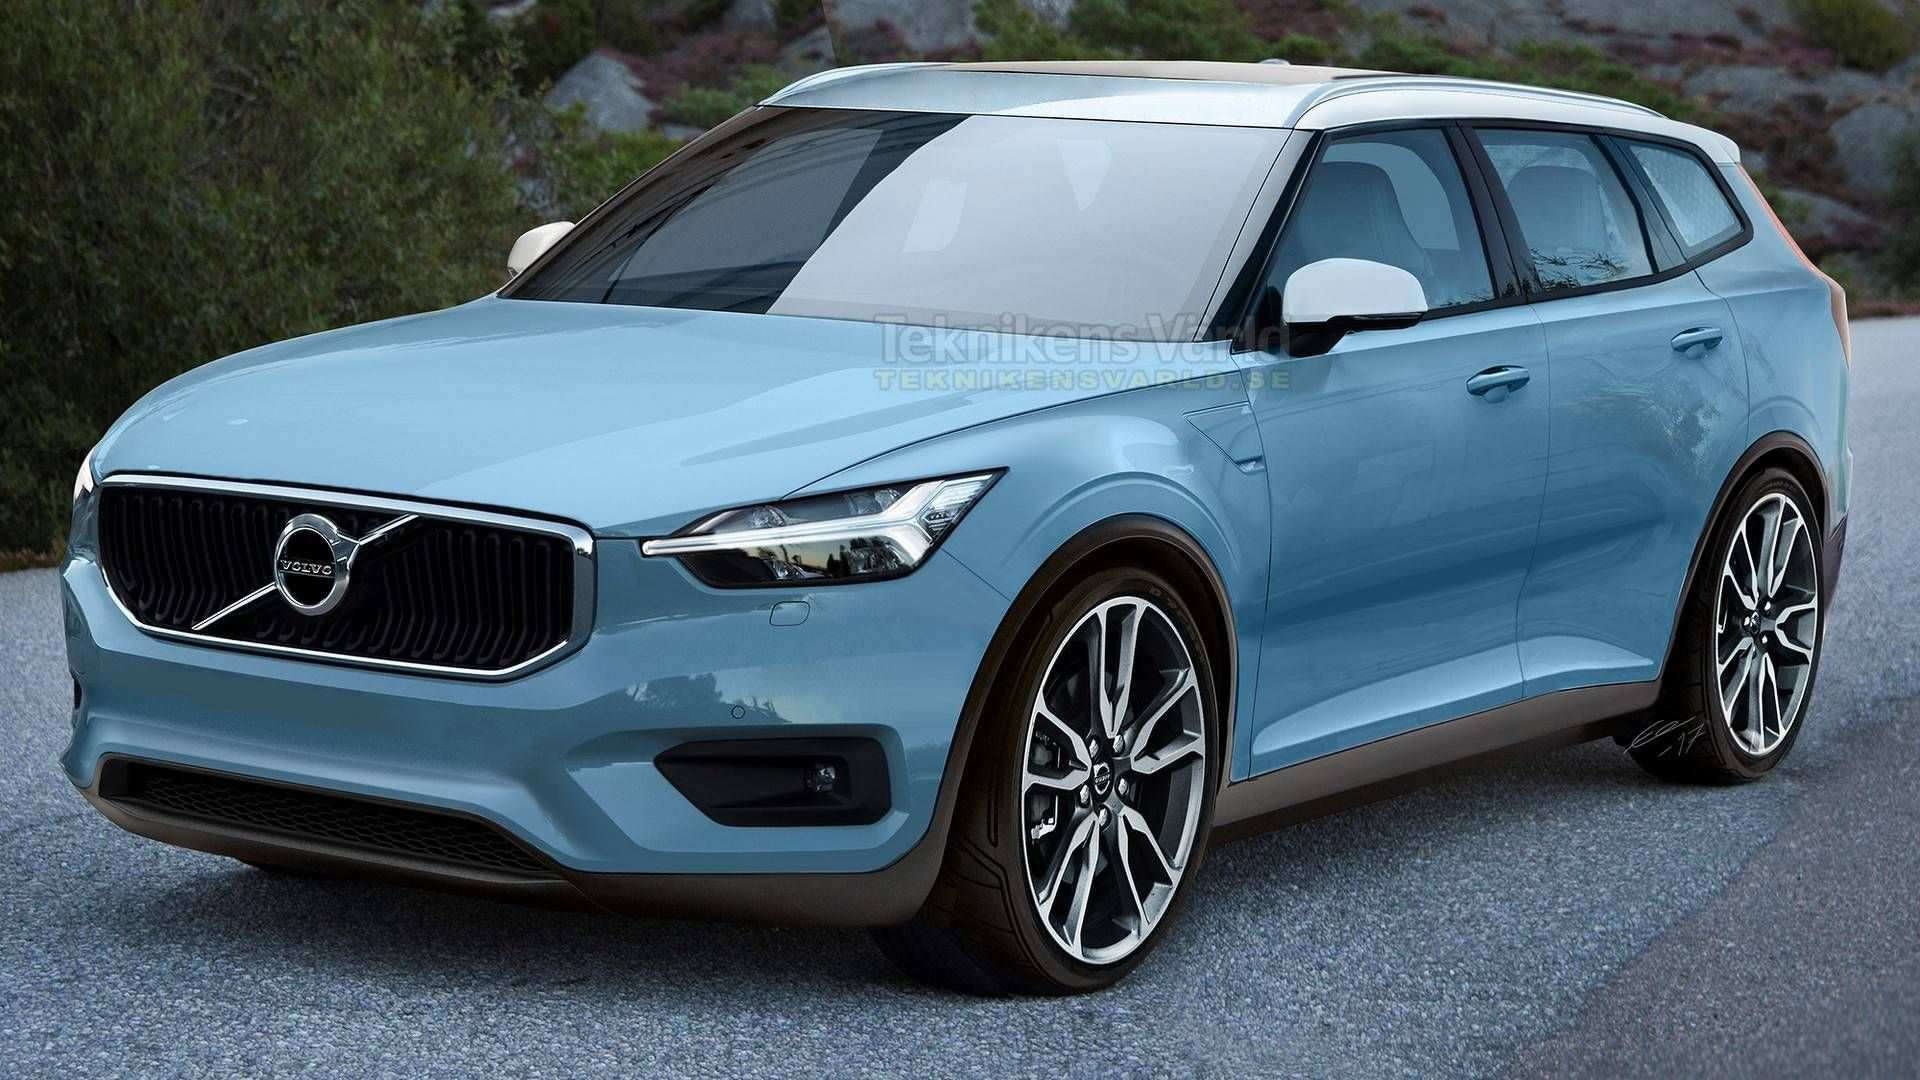 66 New Volvo 2019 Release Date Speed Test with Volvo 2019 Release Date